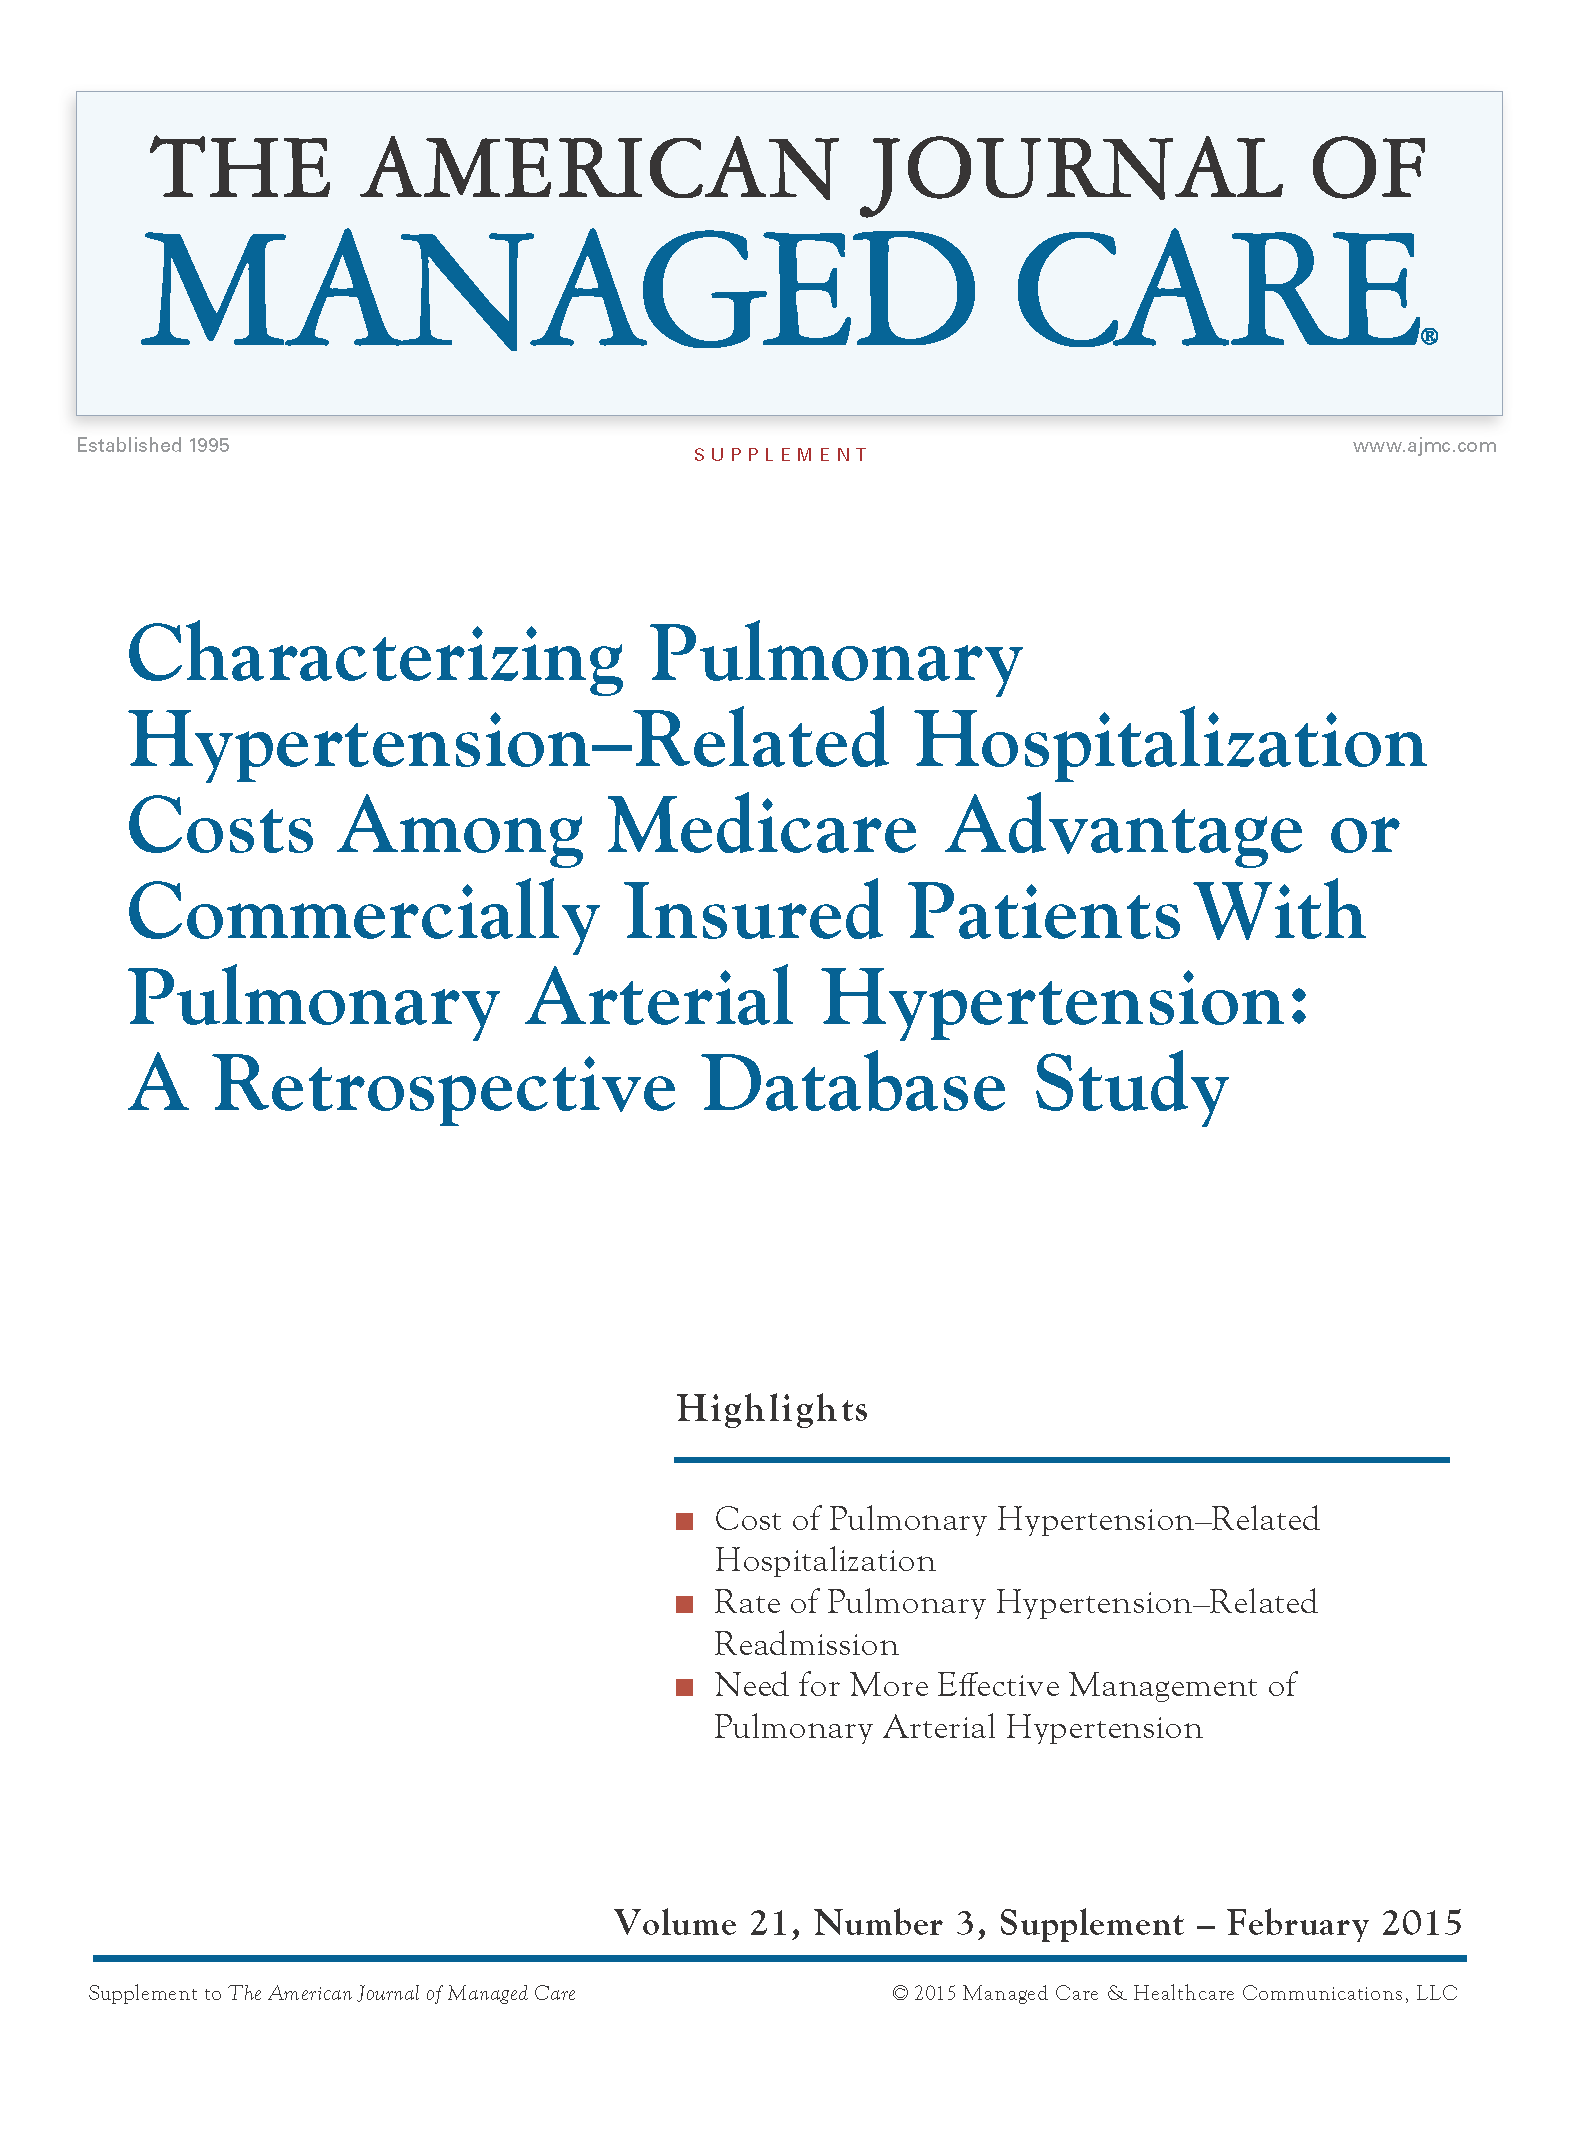 Supplement | Characterizing Pulmonary Hypertension–Related Hospitalization Costs Among Medicare Advantage or Commercially Insured Patients With Pulmonary Arterial Hypertension: A Retrospective Database Study